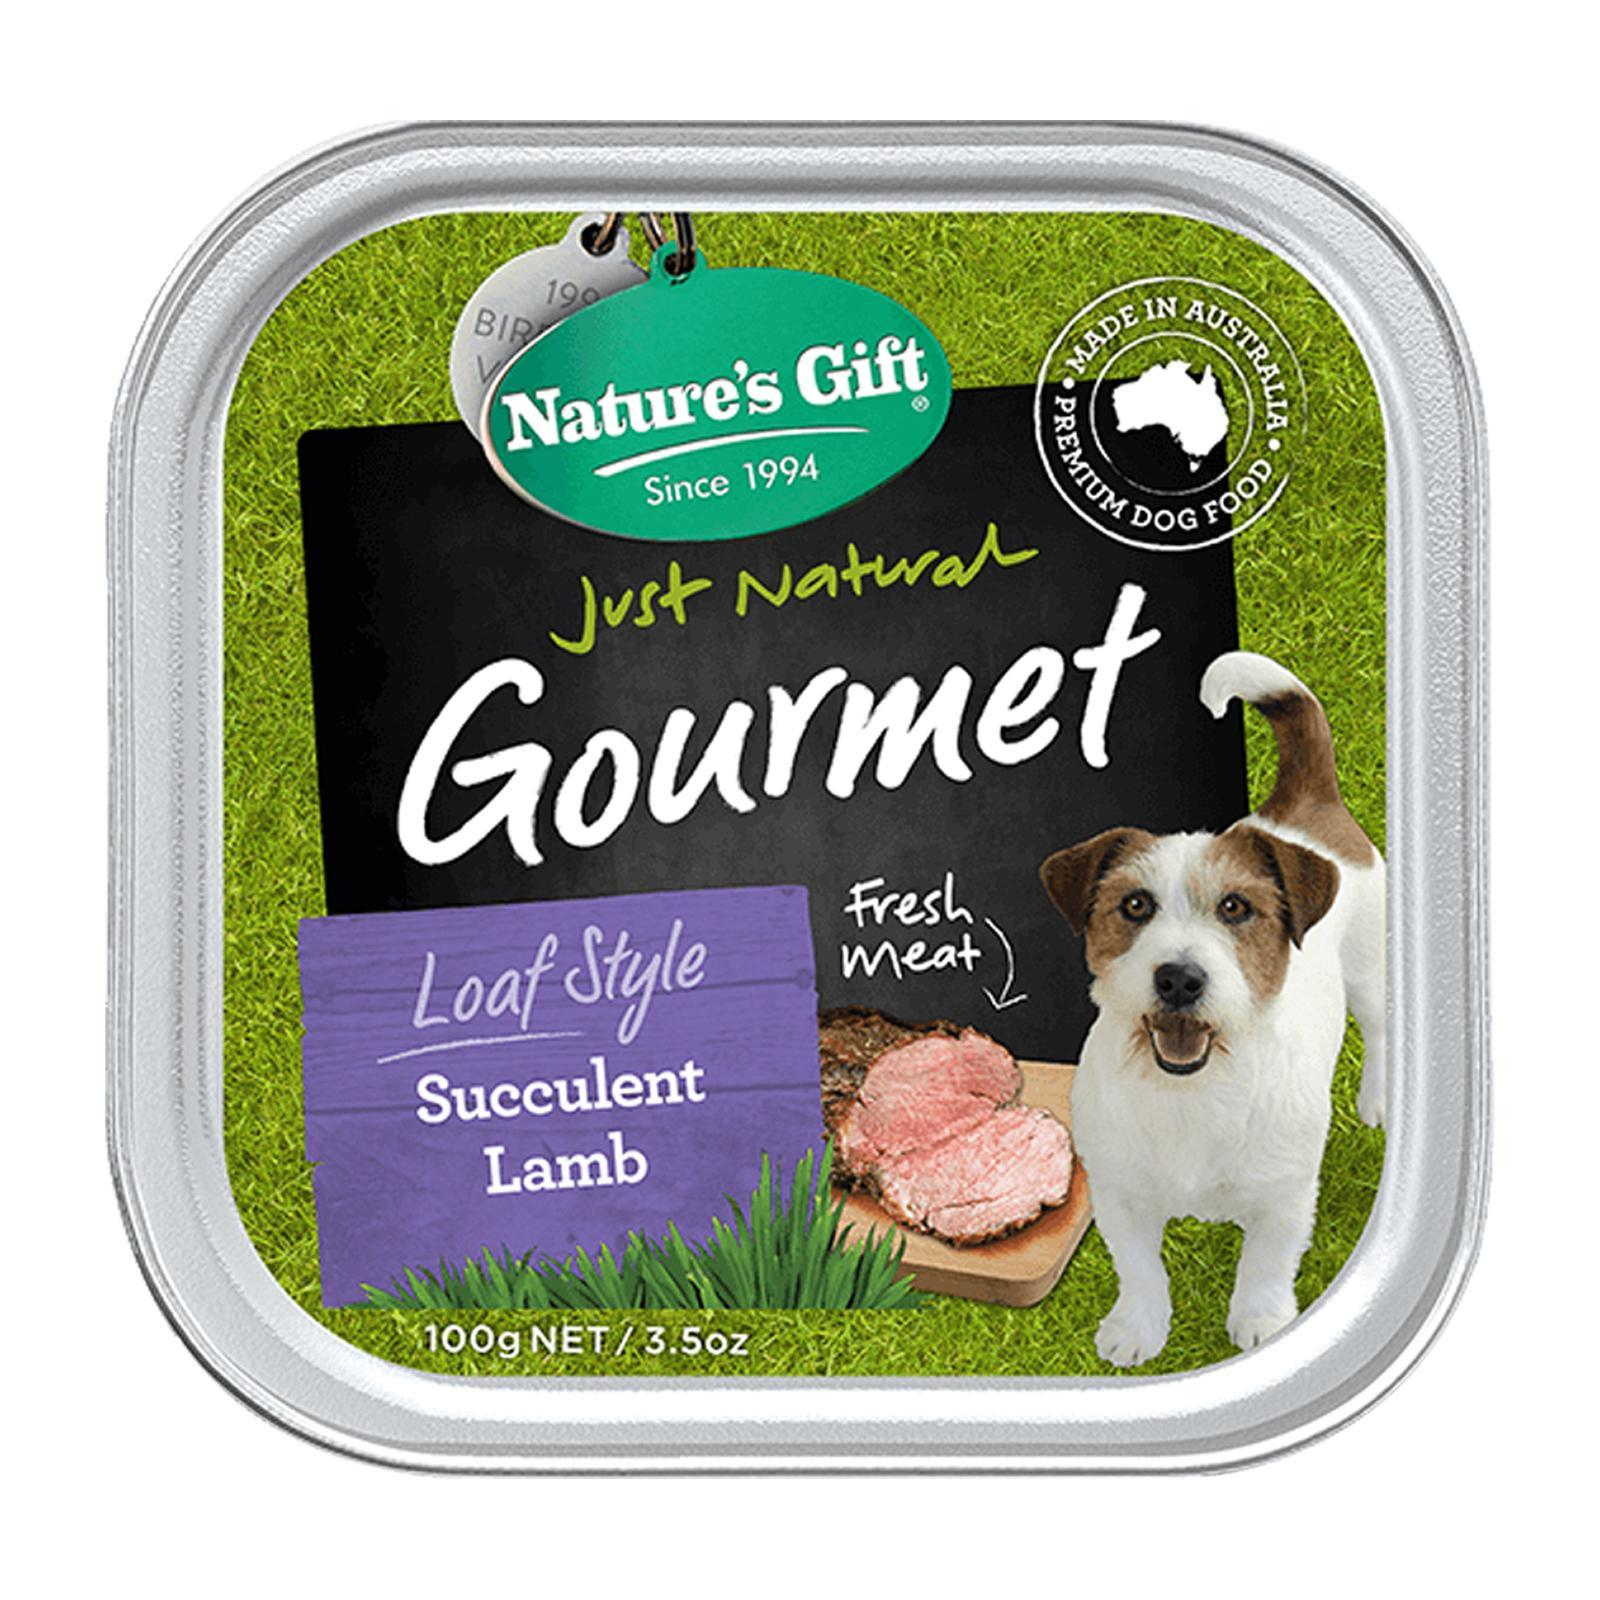 Nature's Gift Gourmet-Succulent Lamb (Loaf Style) 100G